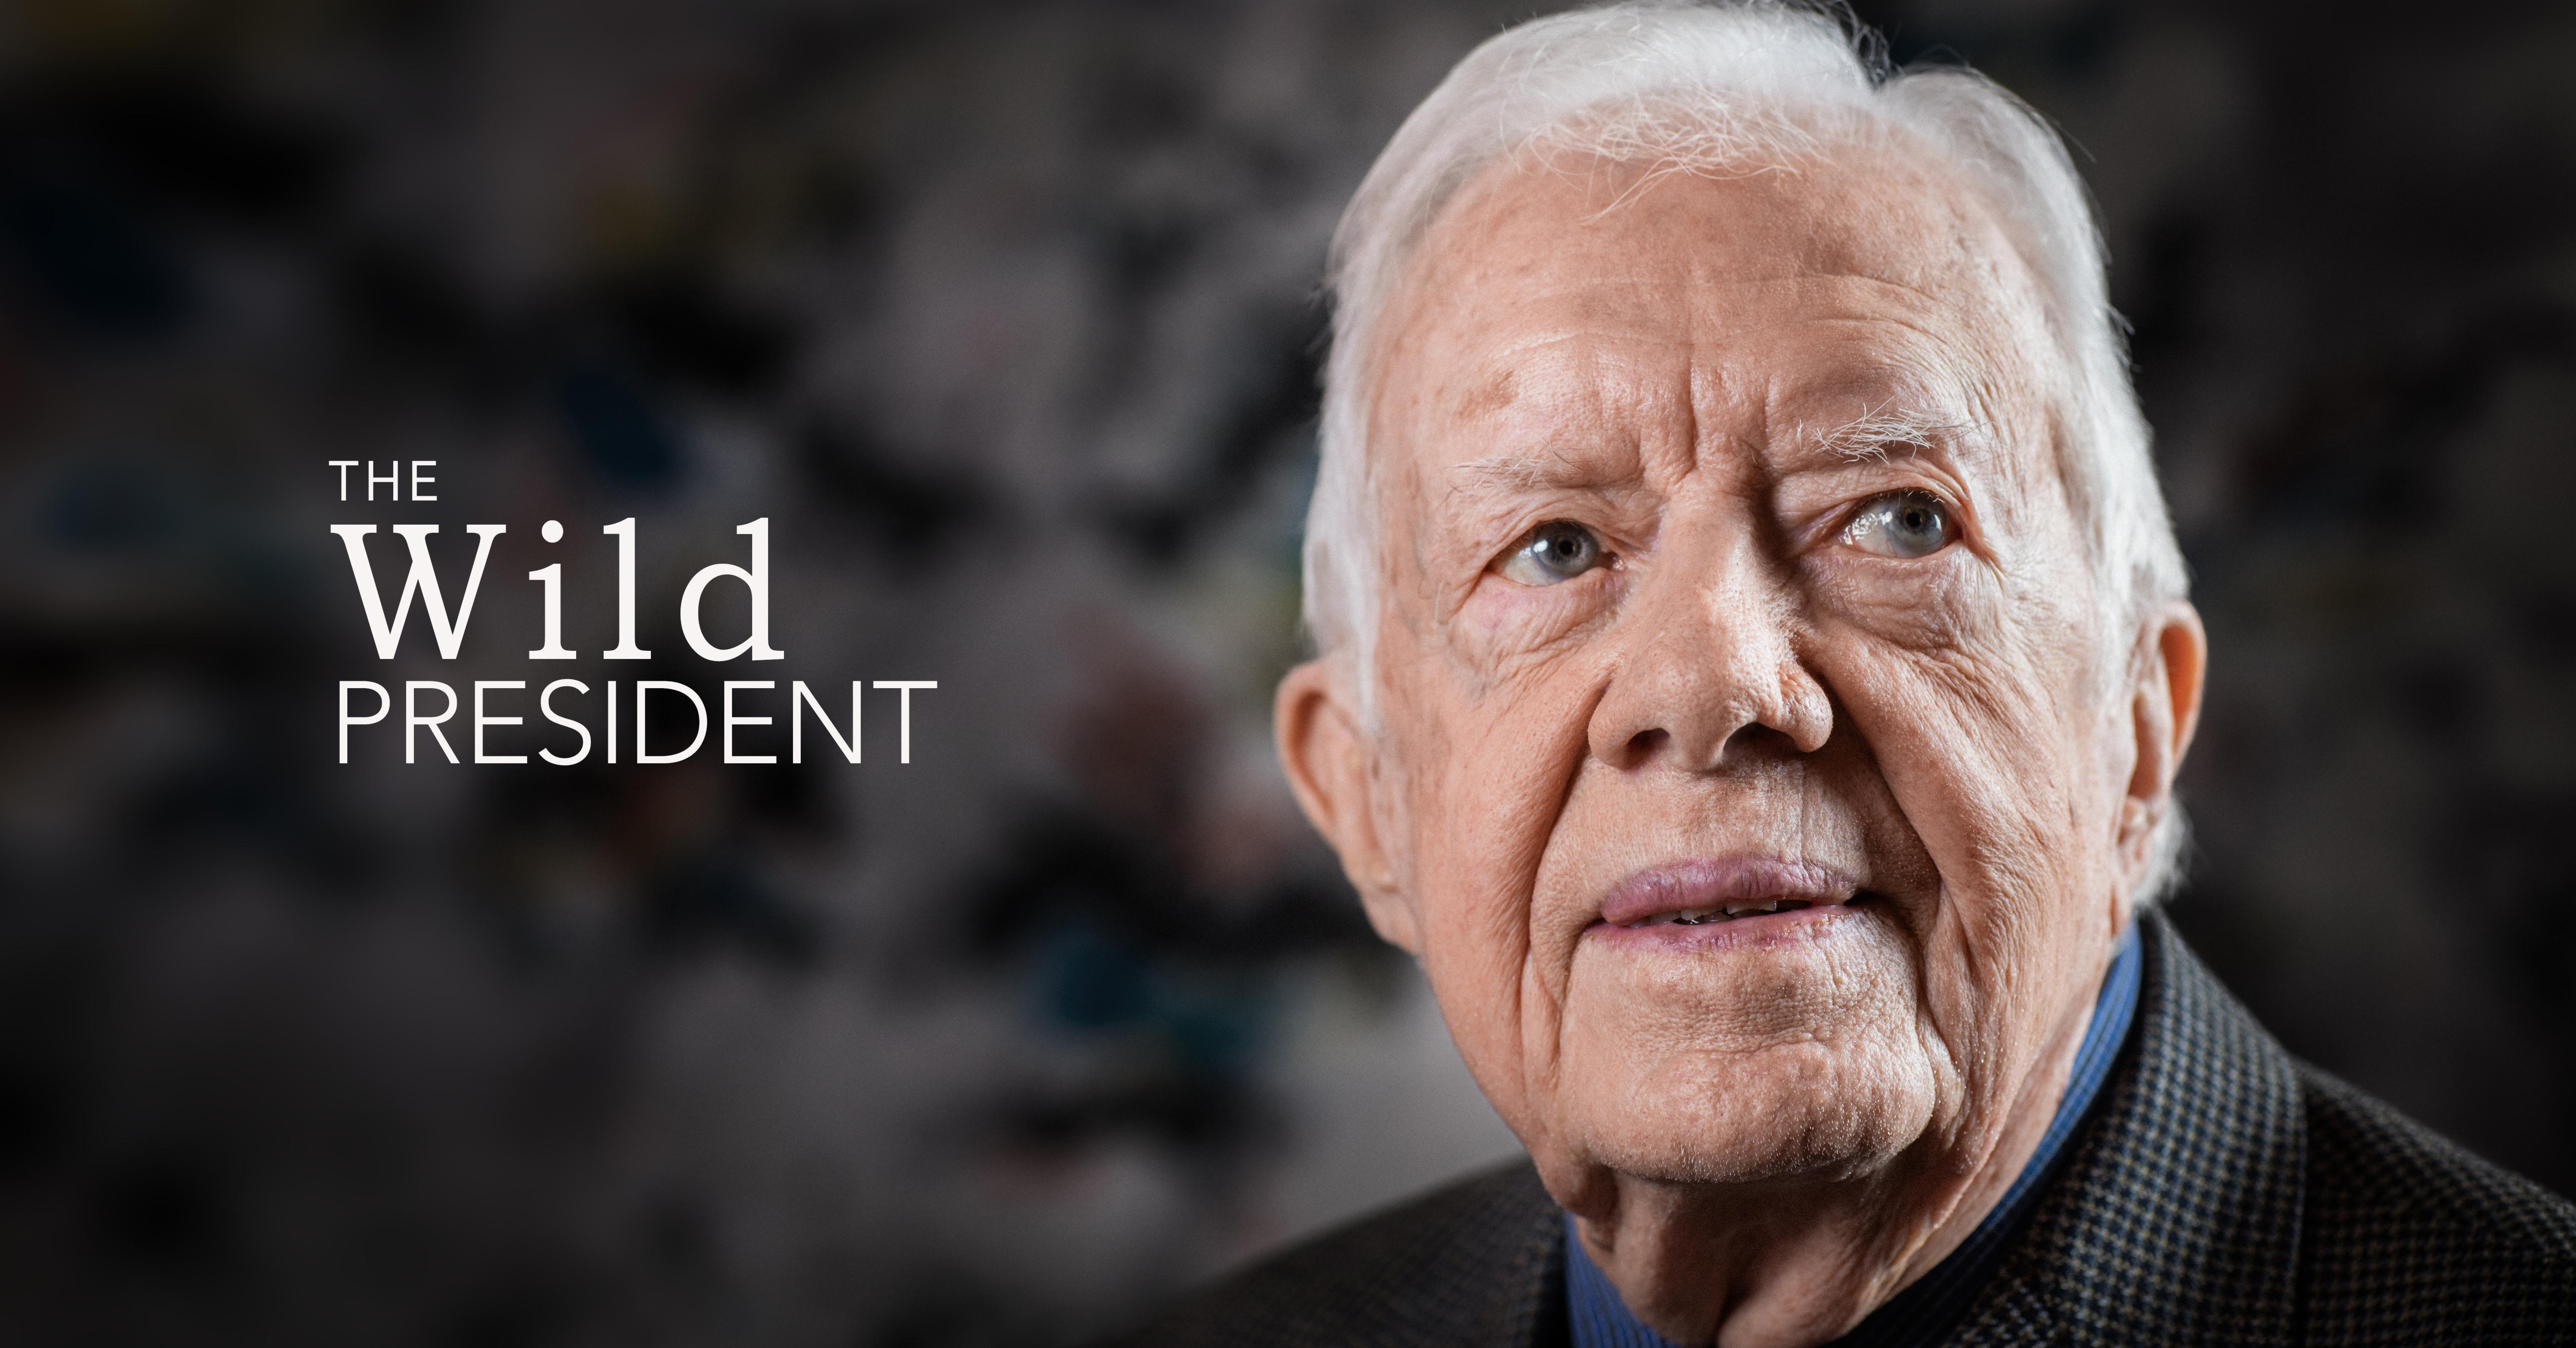 the life and presidency of jimmy carter